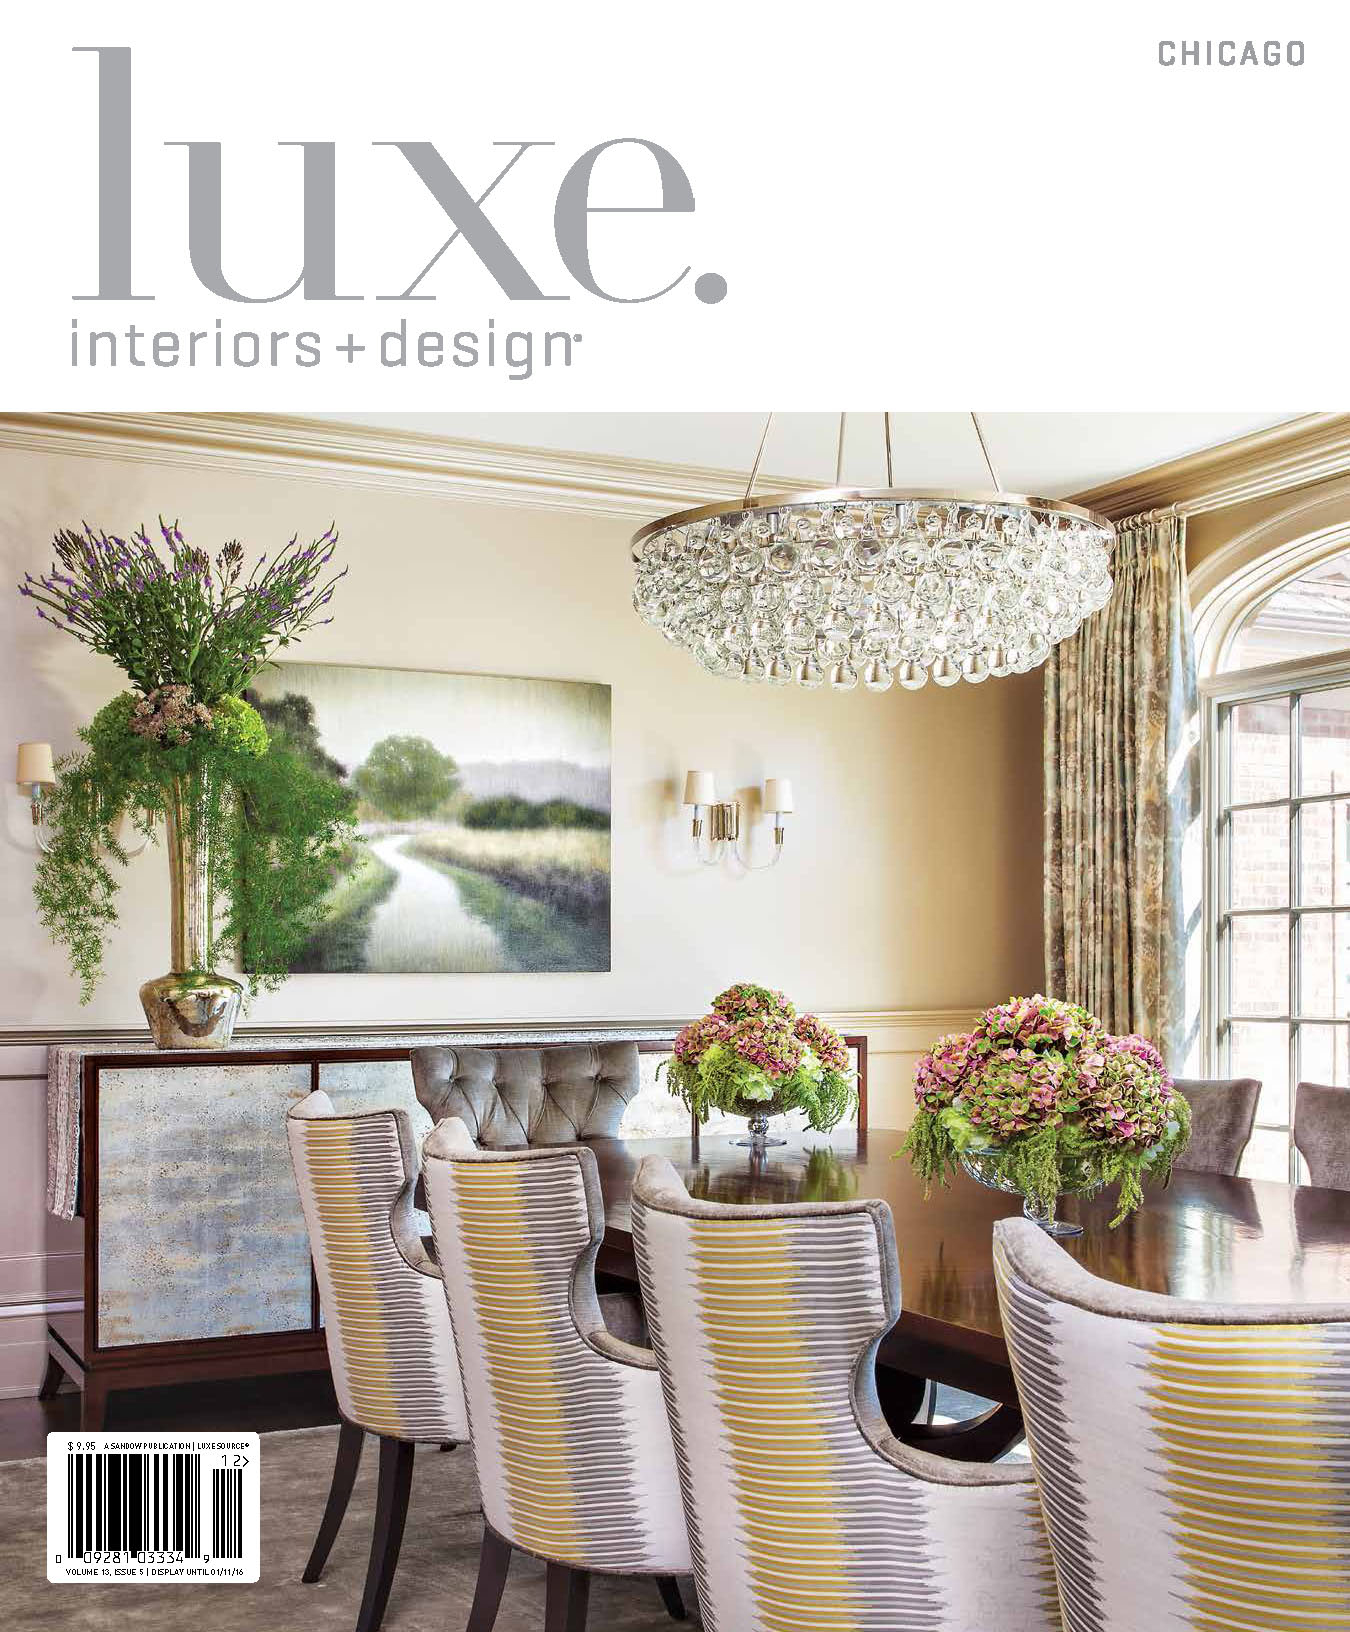 Luxe interiors design soucie horner ltd for Luxe furniture and design